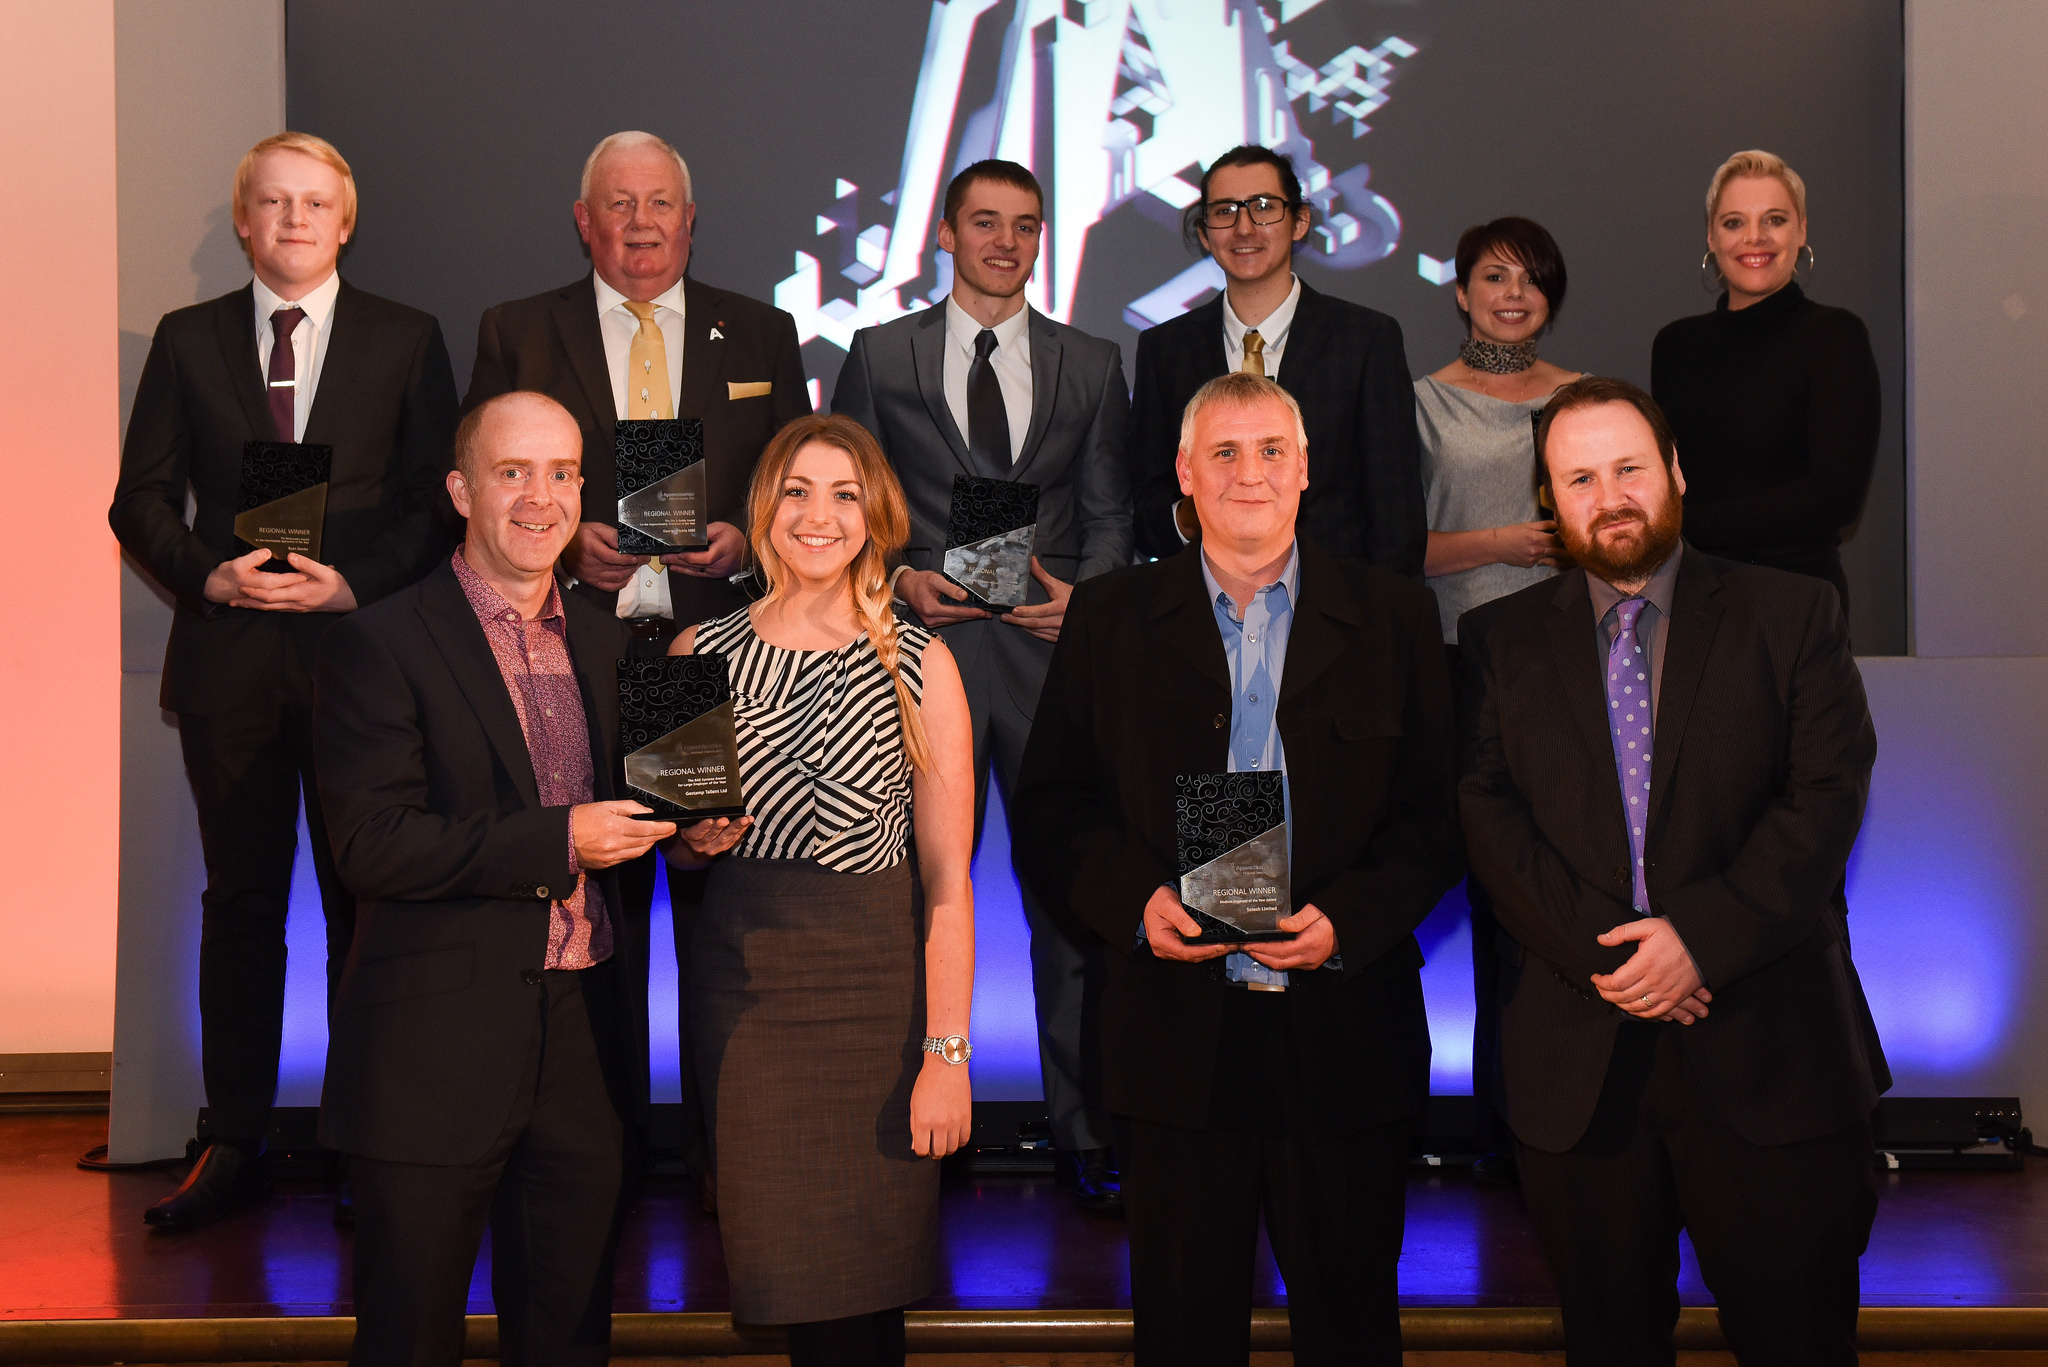 The North East award winners at the Discovery Museum in Newcastle October 15